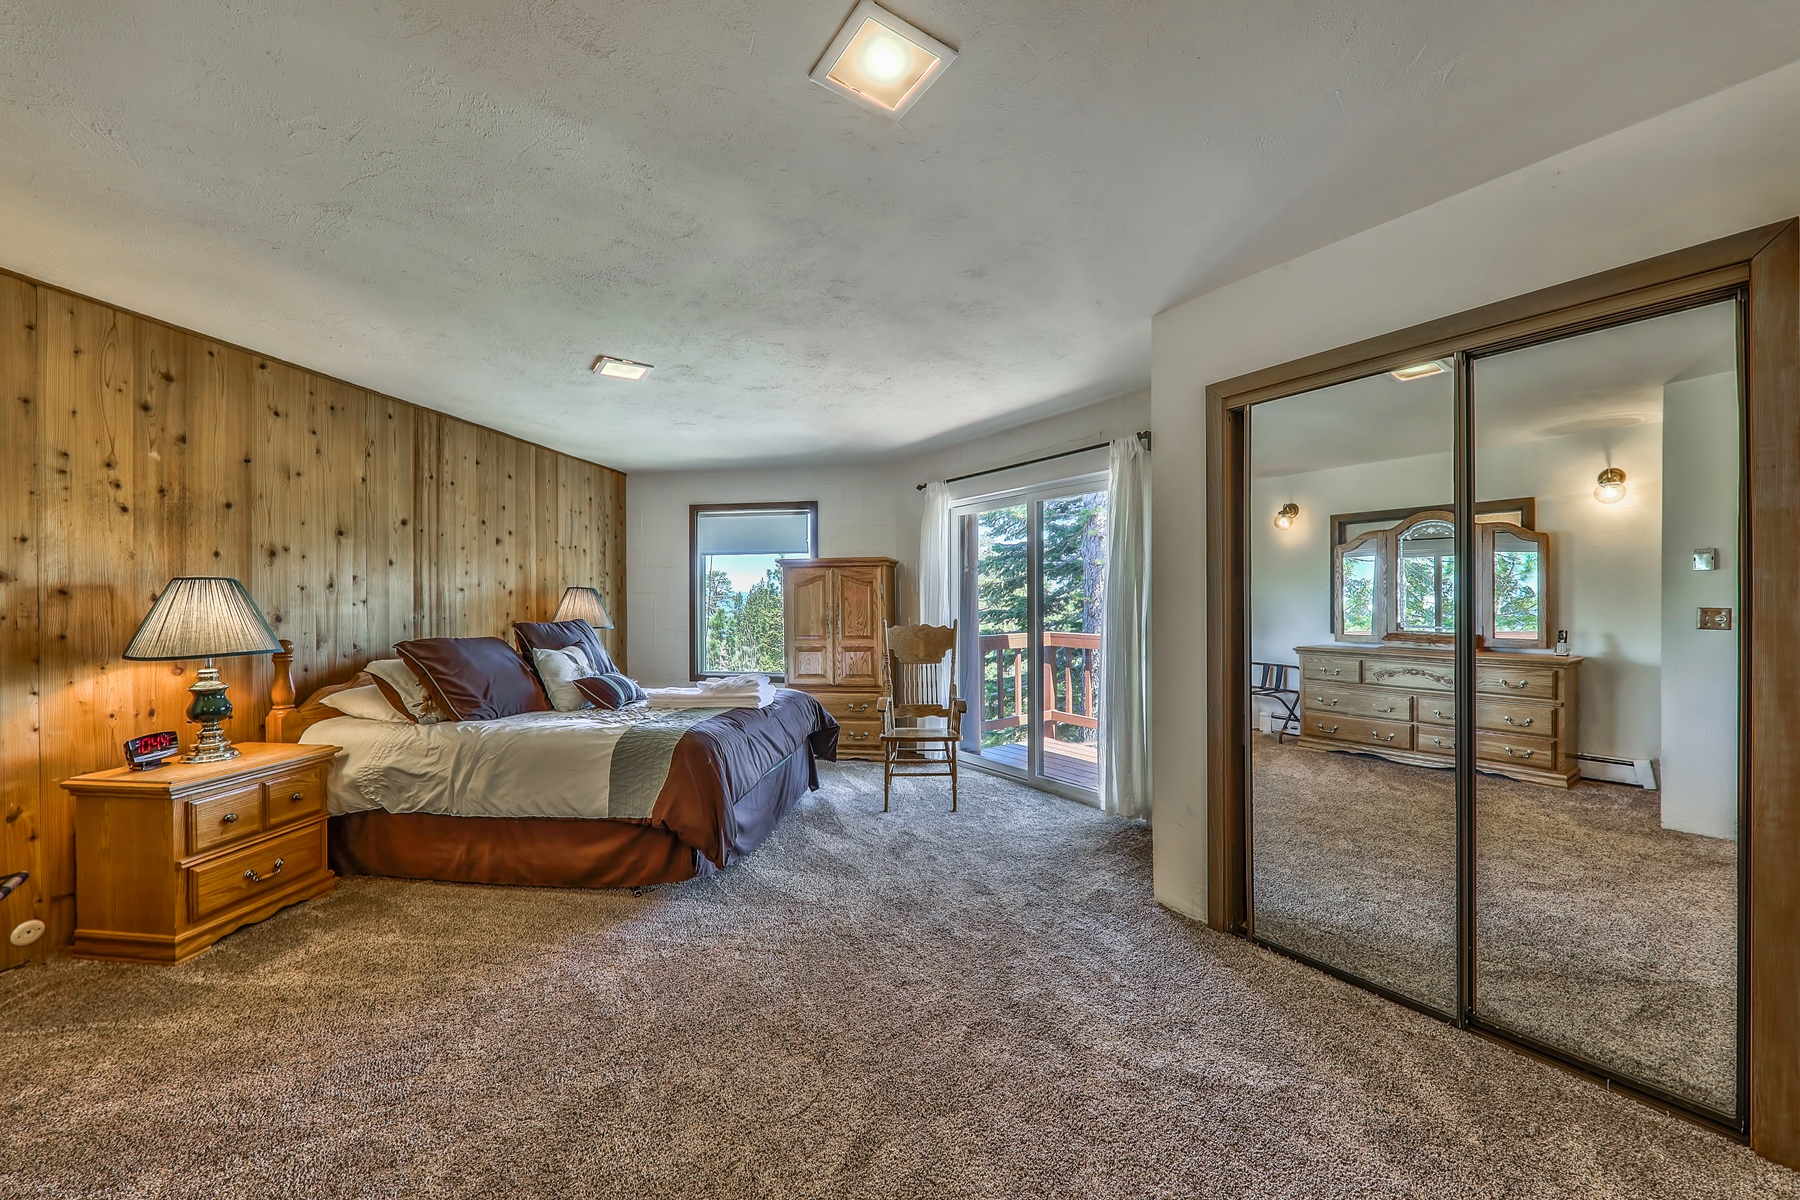 Additional photo for property listing at 1720 Keller Road, South Lake Tahoe, CA 96150 1720 Keller Road South Lake Tahoe, California 96150 United States